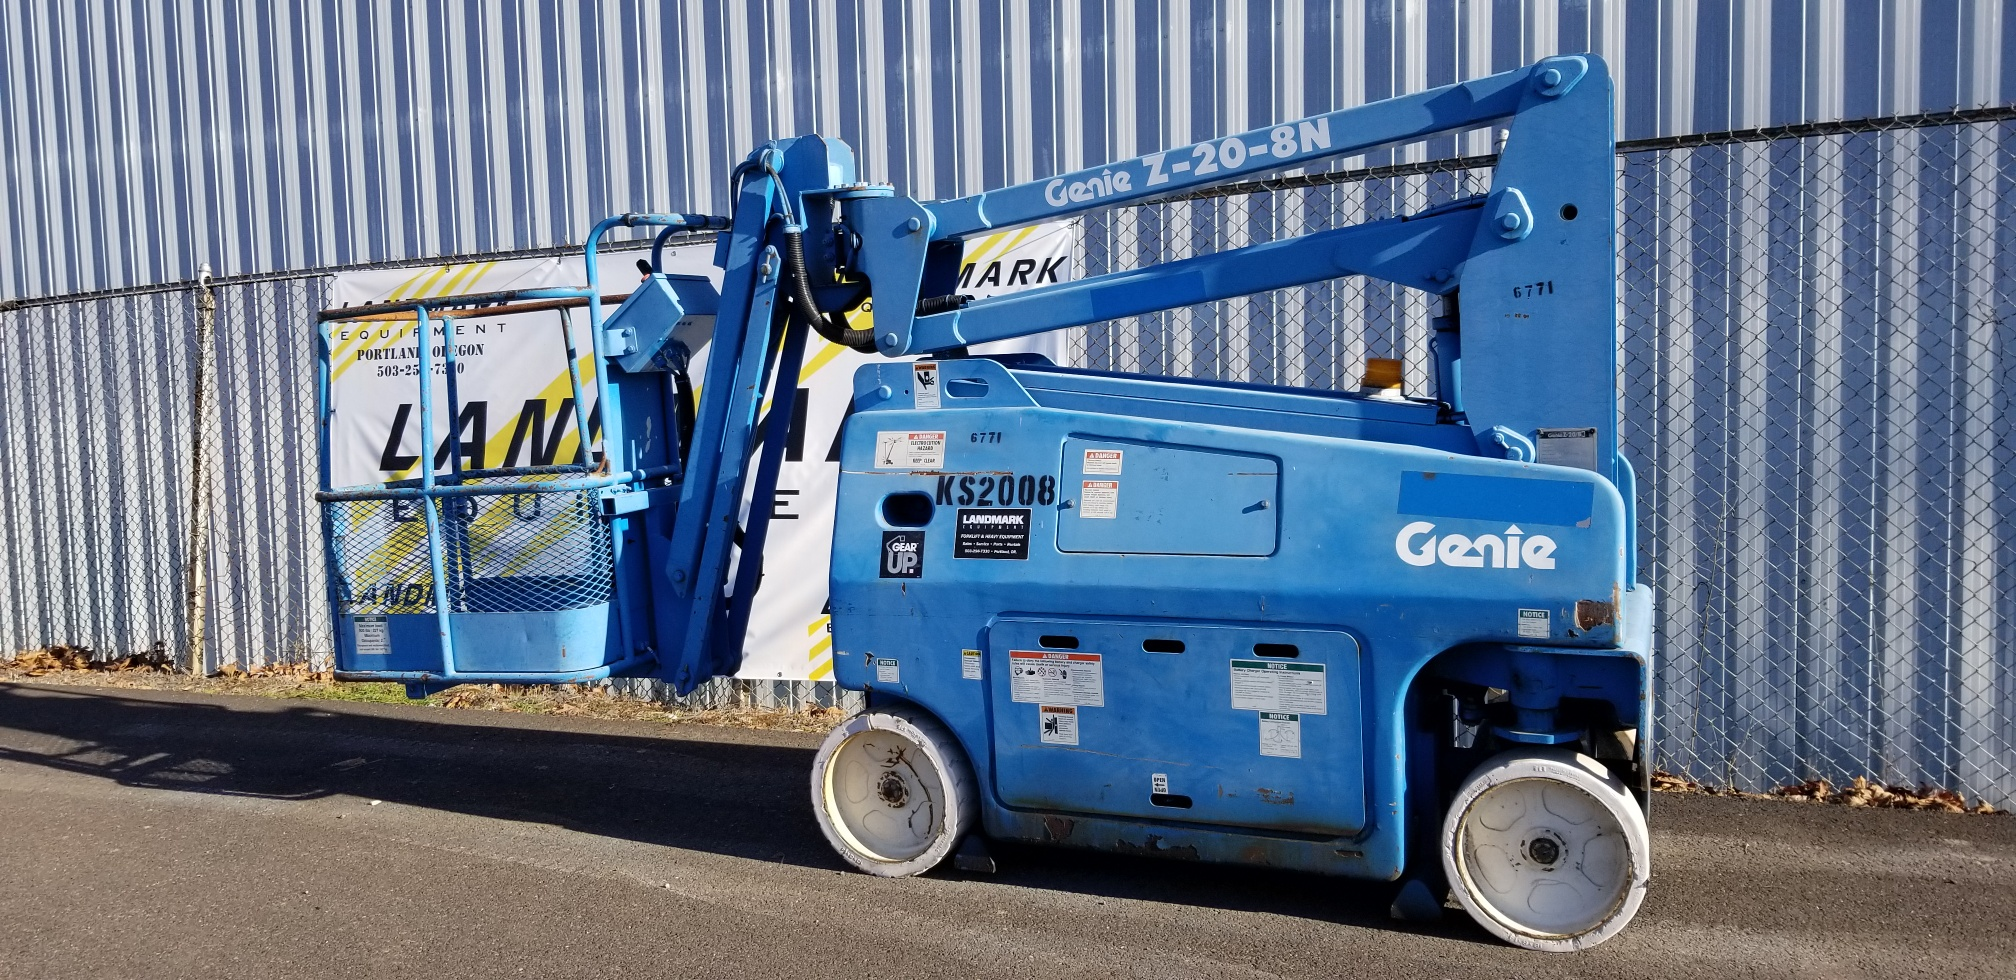 1998 Genie Z Boom For Sale Resized_20201204_122921